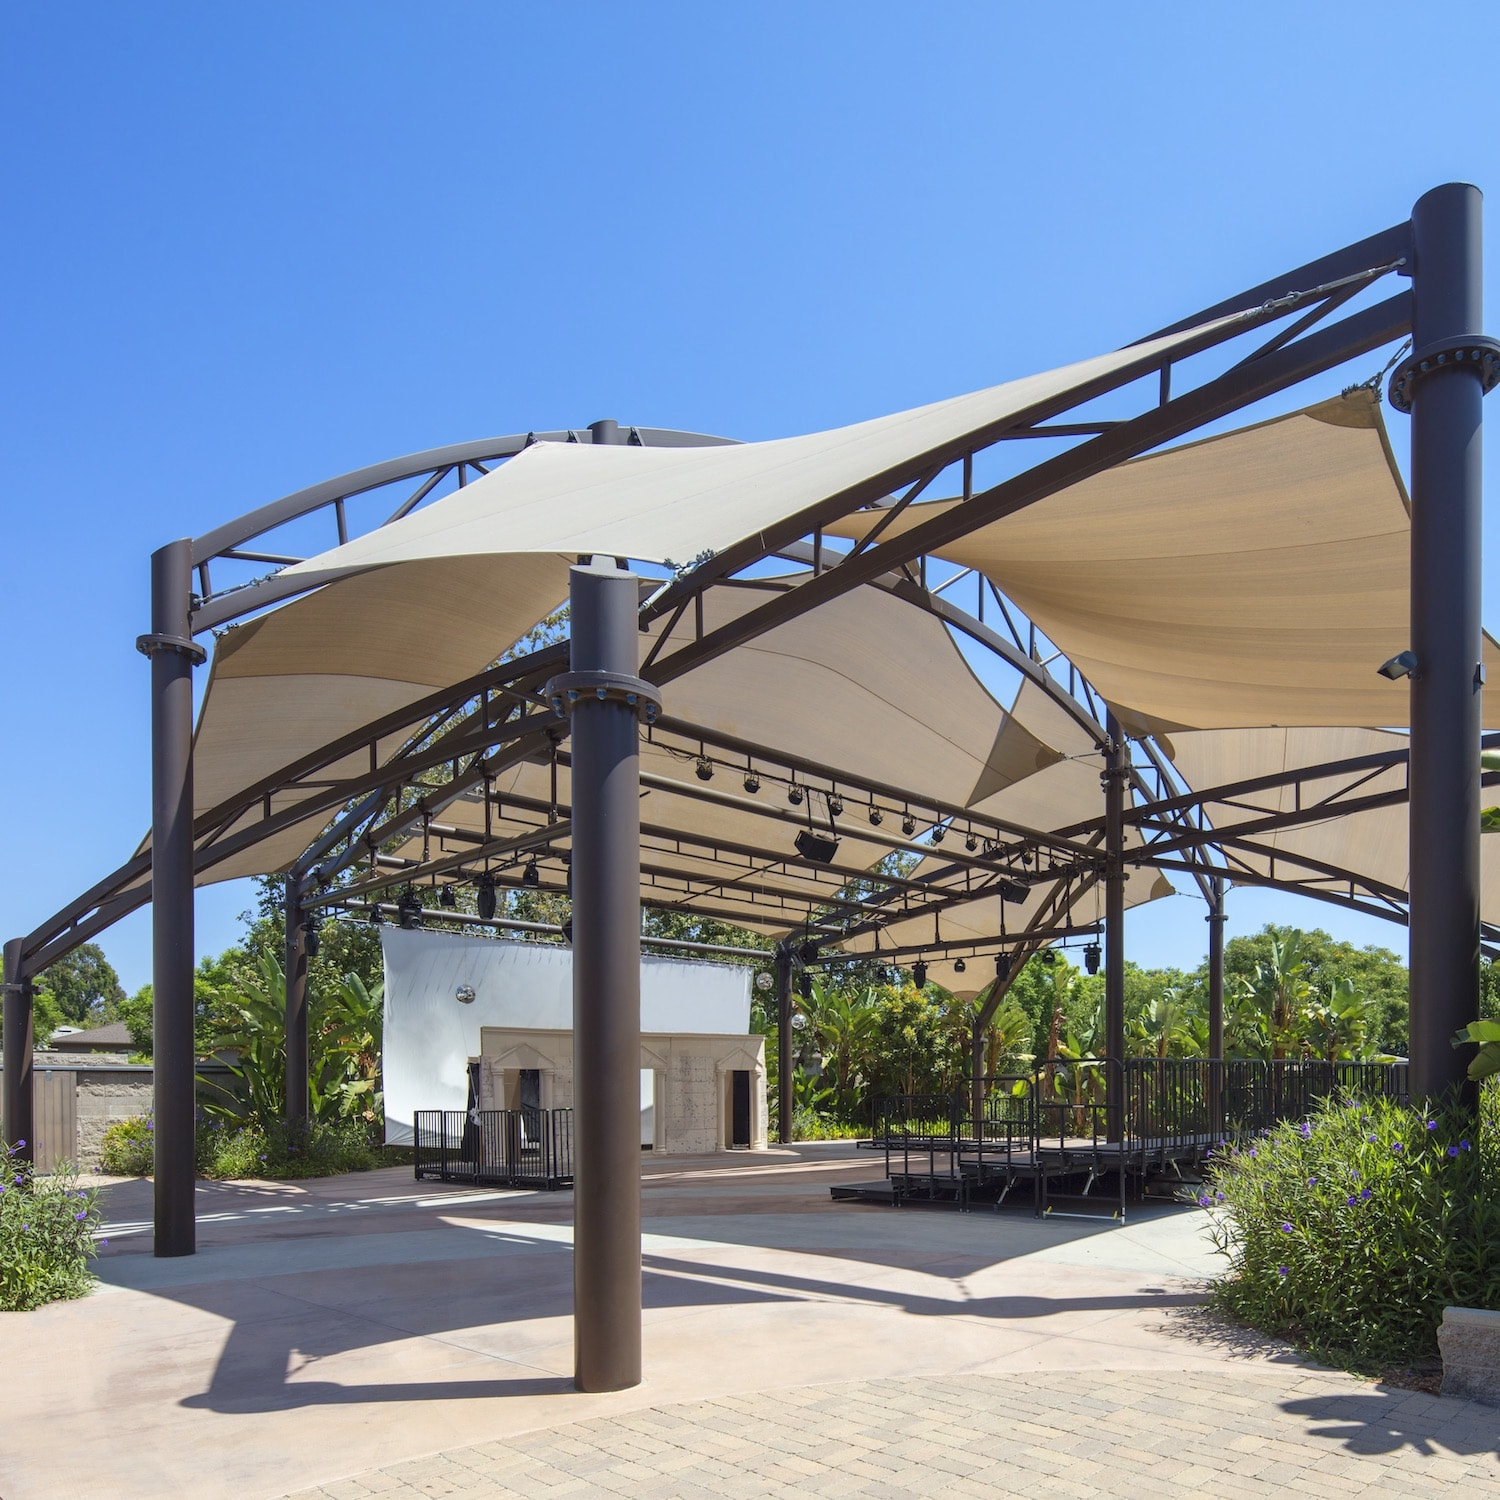 Large tan fabric shade constructed over an outdoor amphitheater.